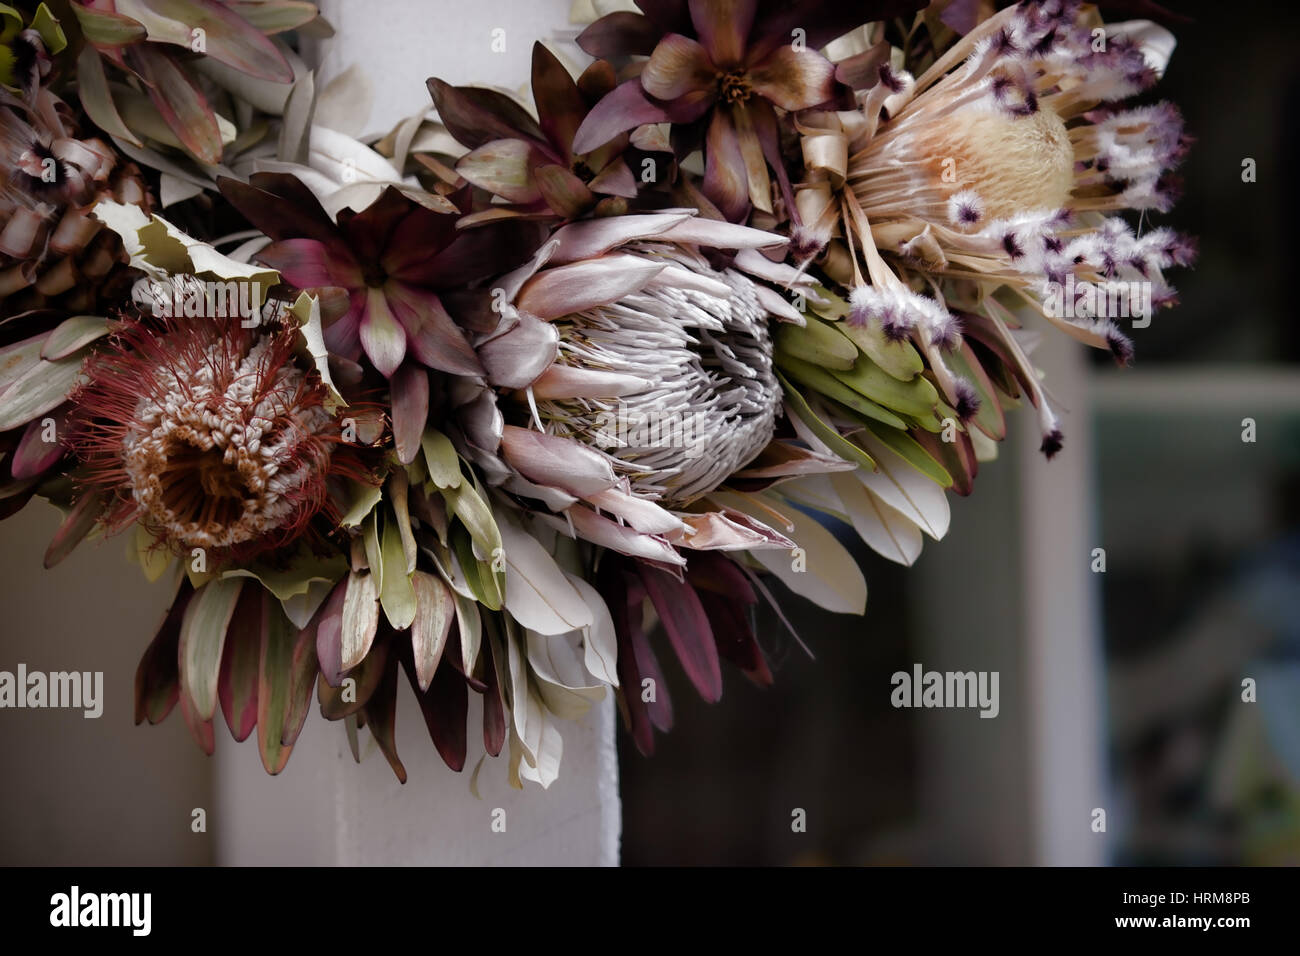 A close up shot of a dried wreath made of exotic hawaiian protea a close up shot of a dried wreath made of exotic hawaiian protea flowers in soft muted tones at a farmstand on the island of maui hawaii izmirmasajfo